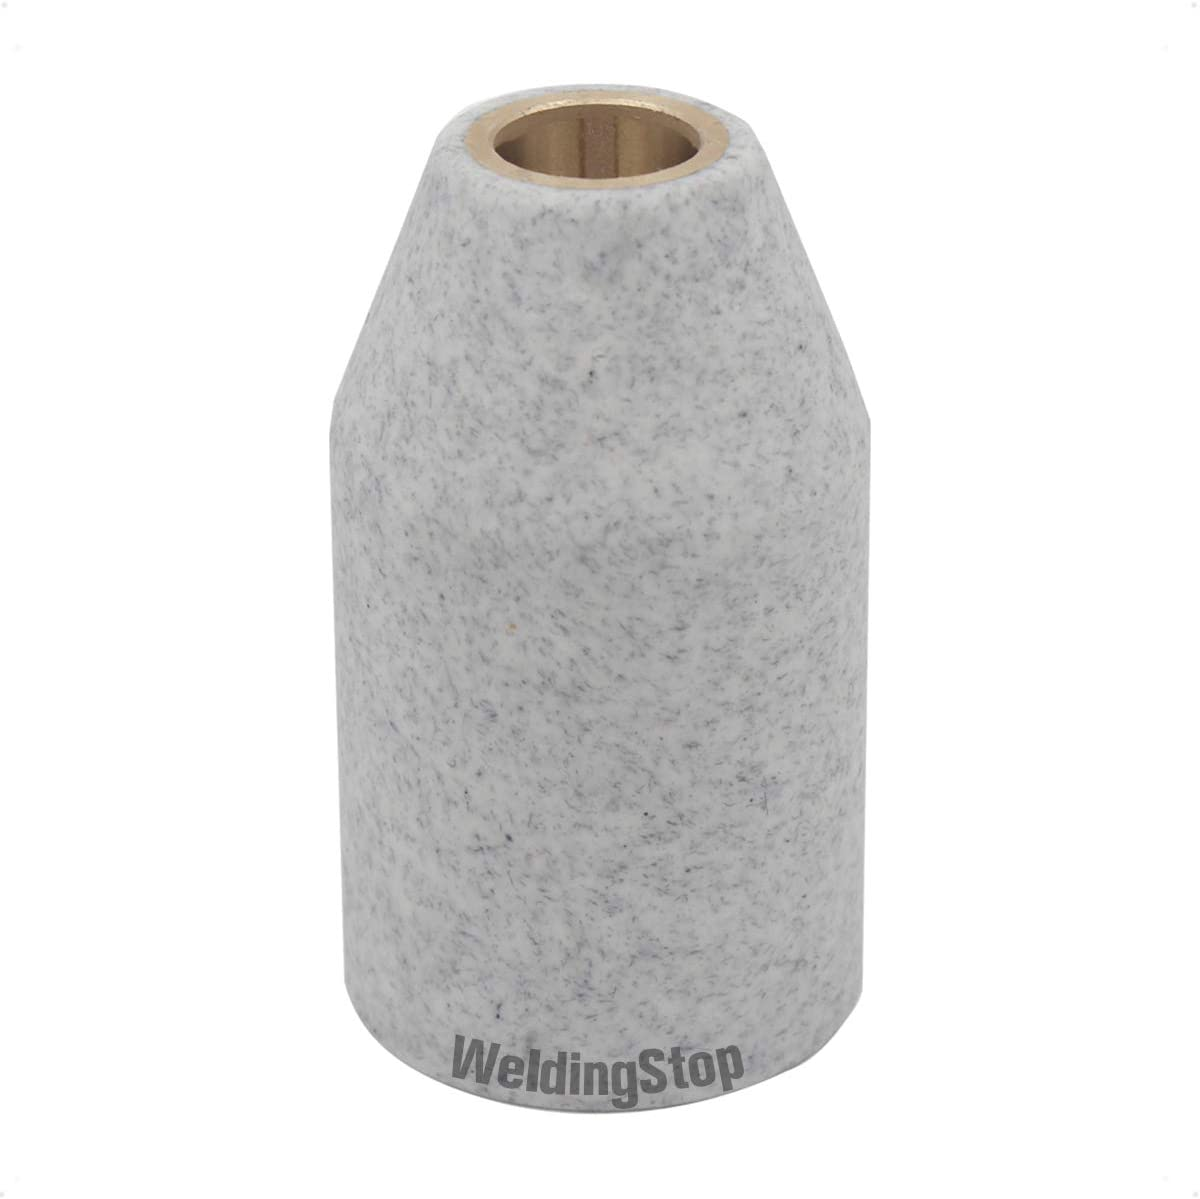 WeldingStop Shield Cap 9-8218 Reservation for Thermal 52 8 Cutmaster Max 48% OFF Dynamic